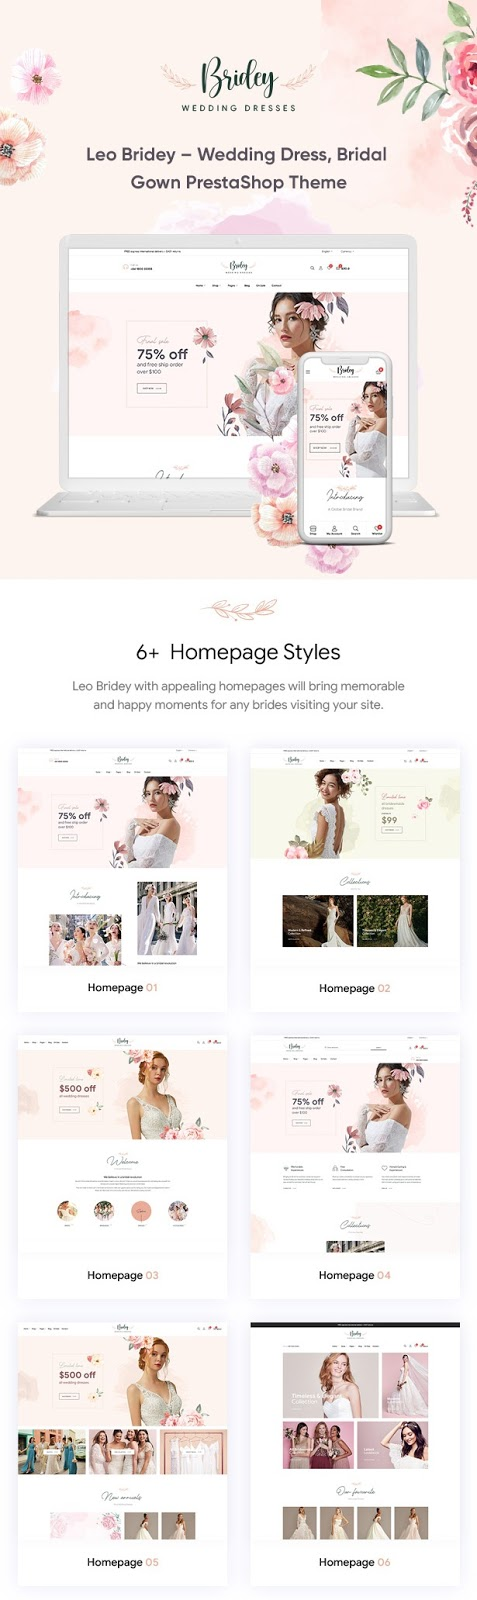 Wedding Dress, Bridal Gown Online Shop Theme